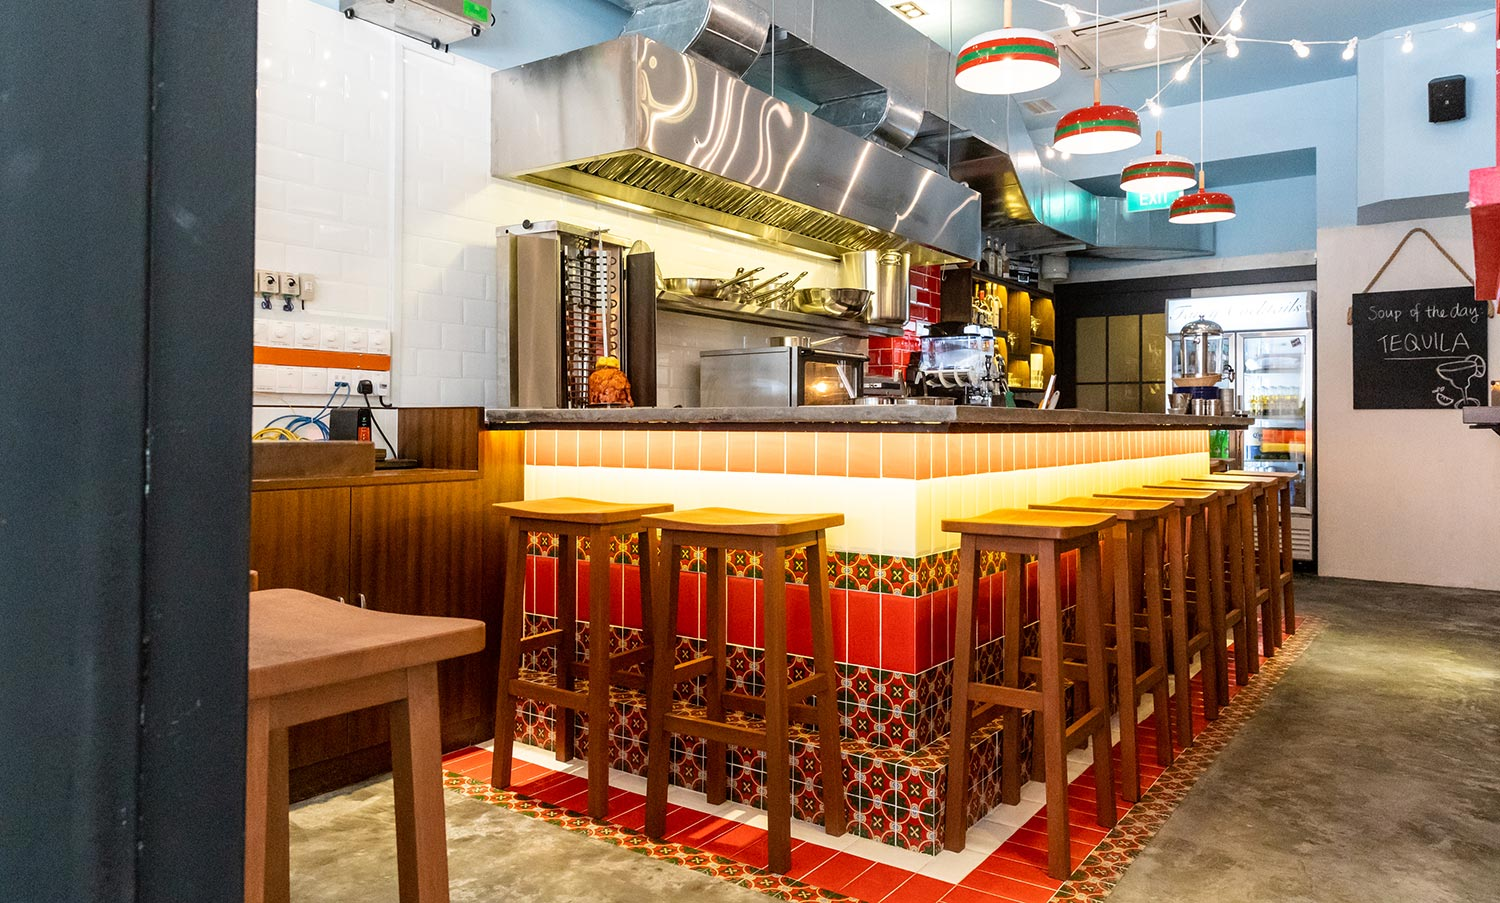 Papi's Tacos - Spicing up the City's Lunch Hour with a Flavoursome Mexican Feast